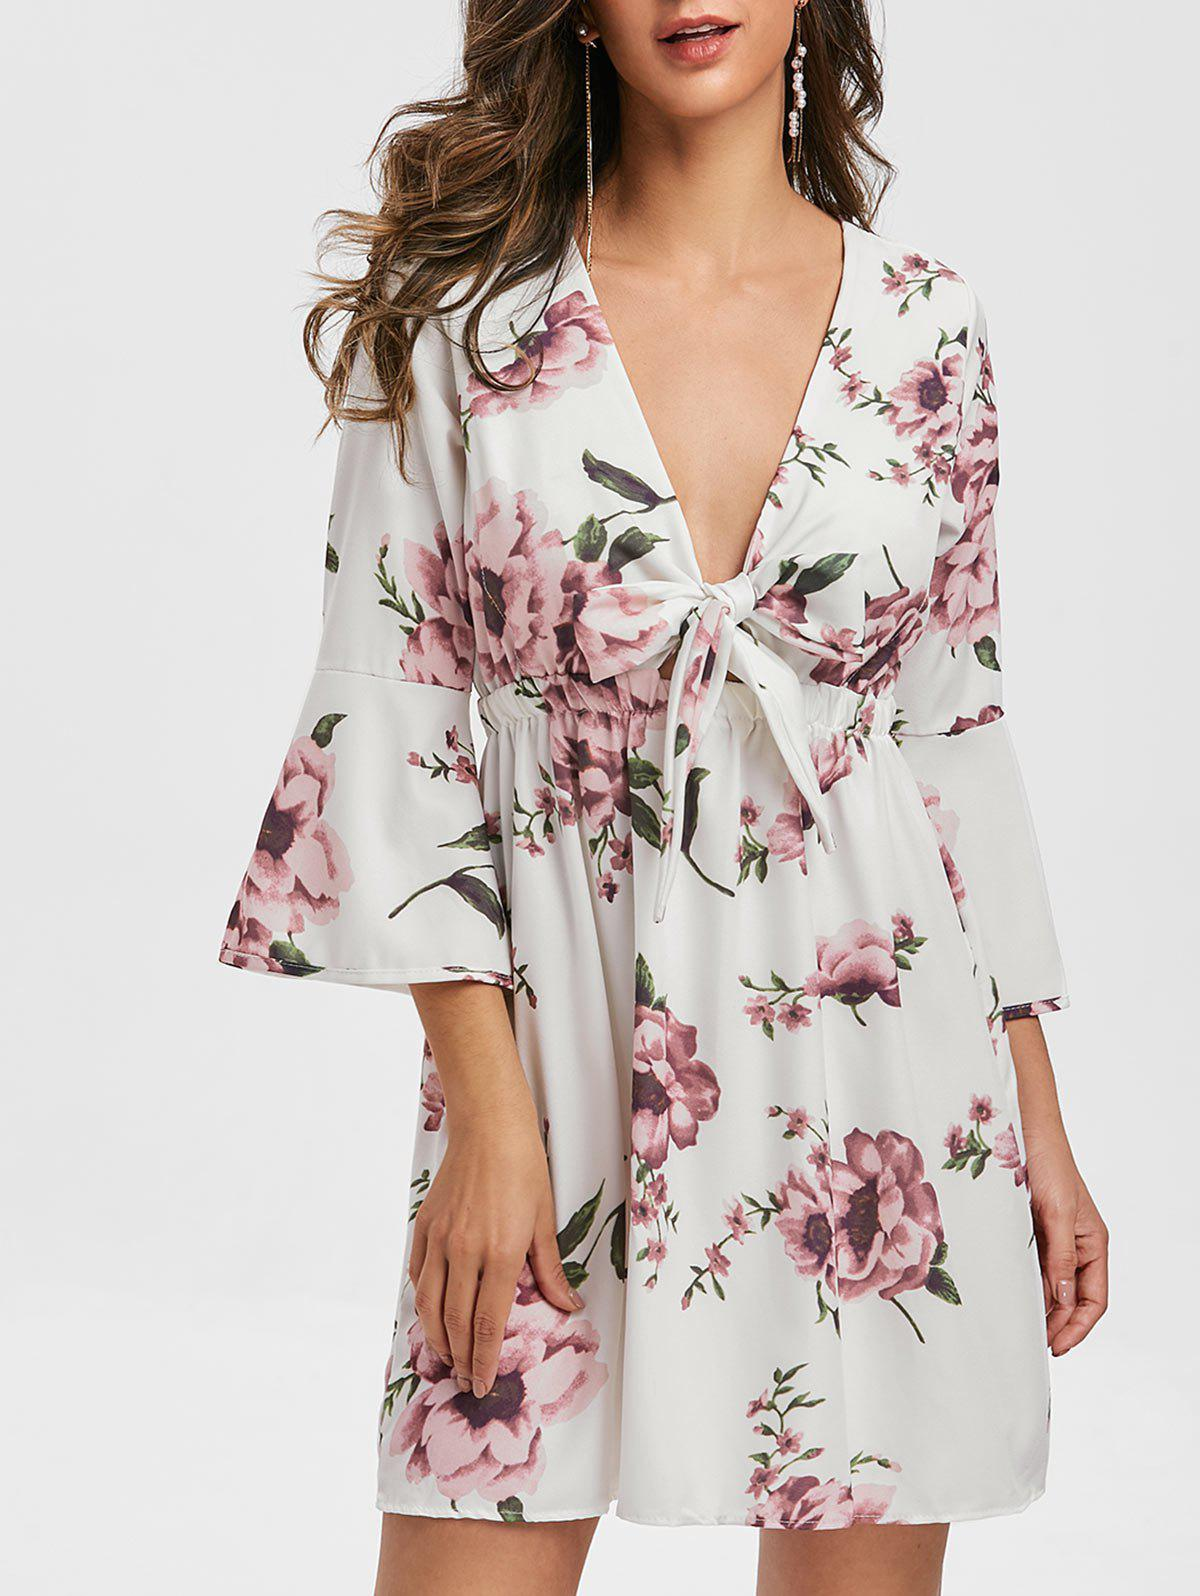 Flare Sleeve Knotted Floral Print Dress - WHITE L